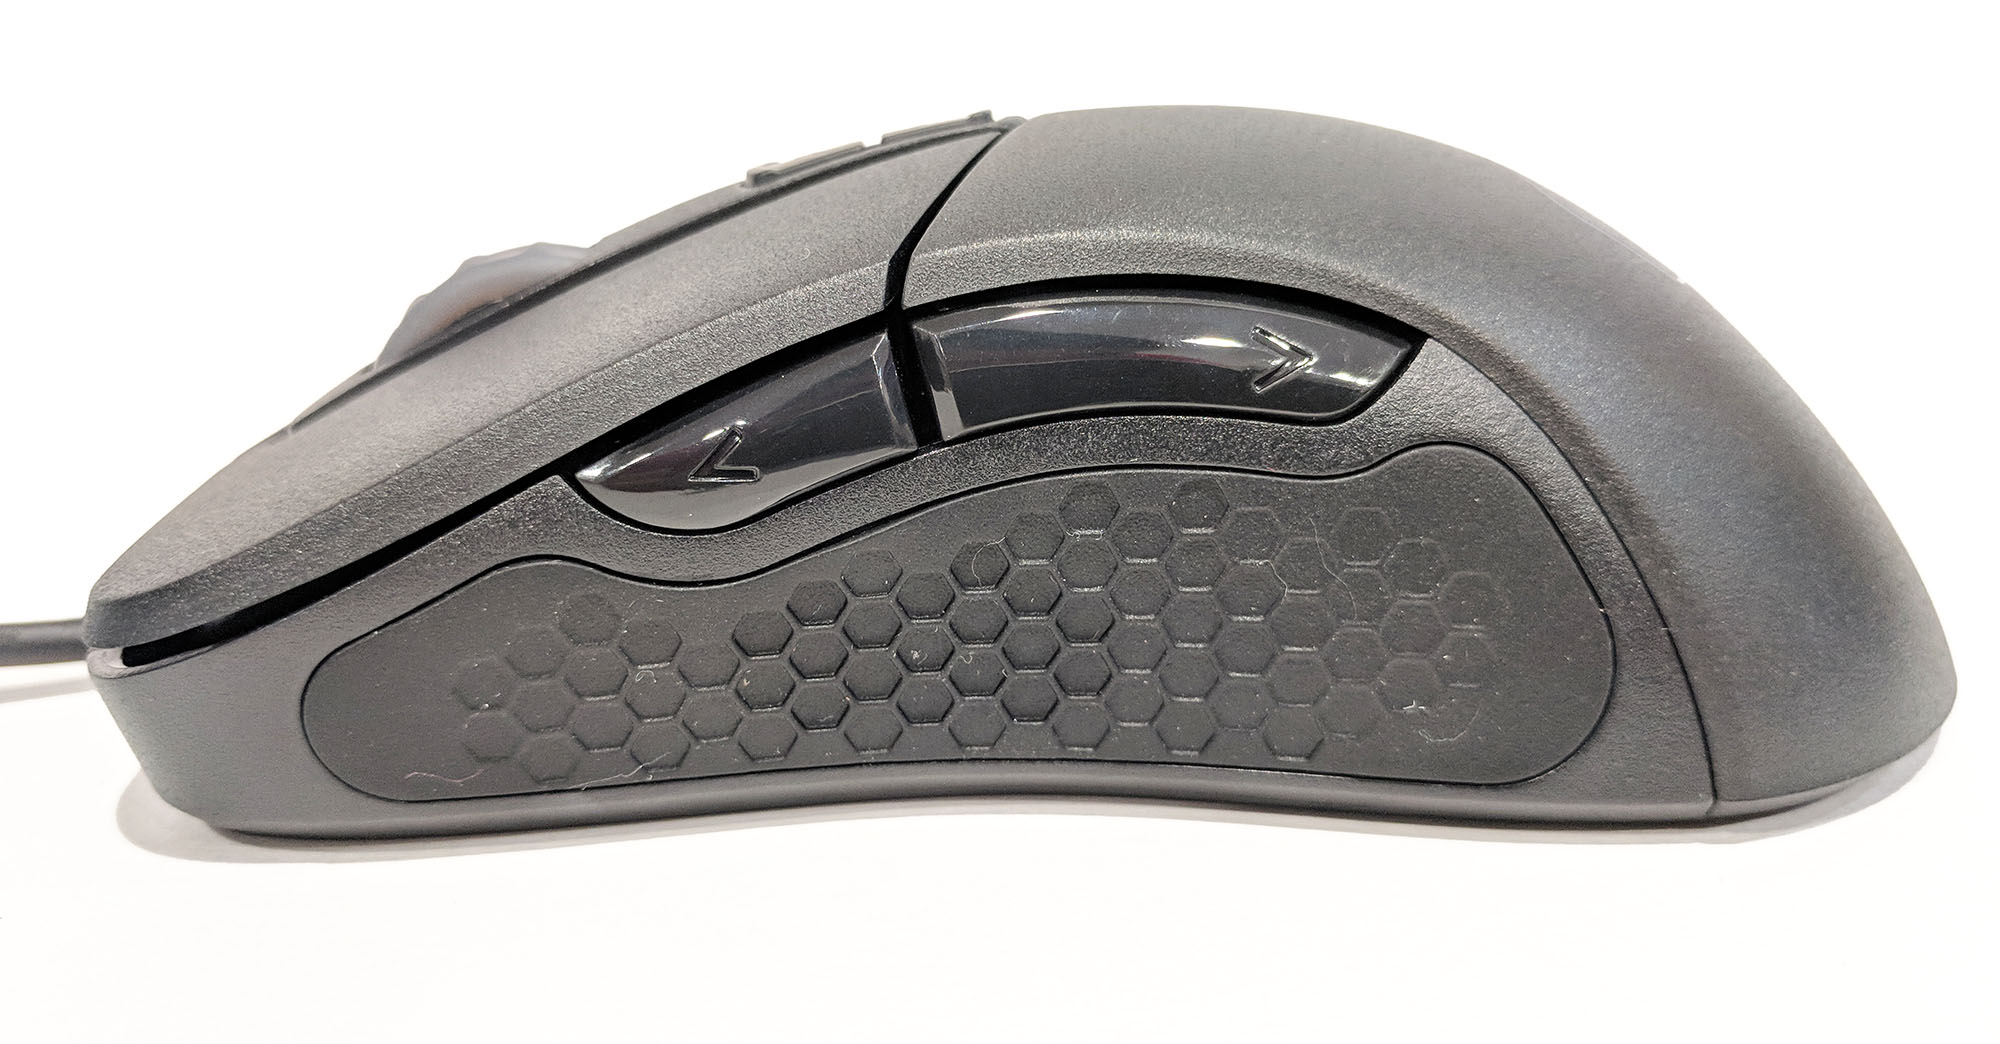 Cooler Master MM531 Gaming Mouse Review – GND-Tech